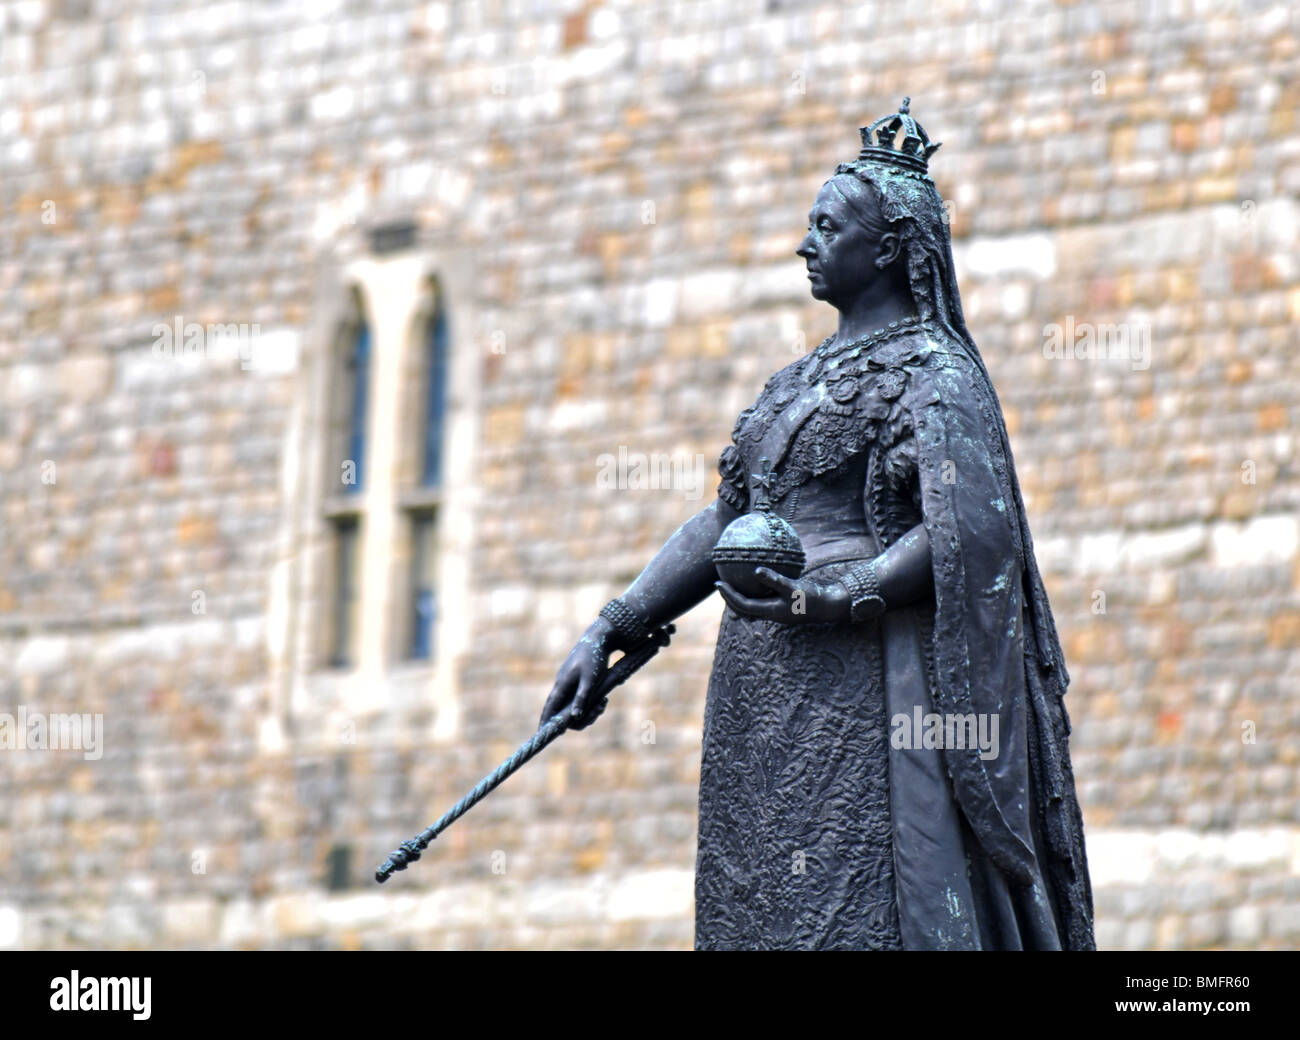 Queen Victoria statue outside Windsor Castle, Berkshire, Britain, UK - Stock Image